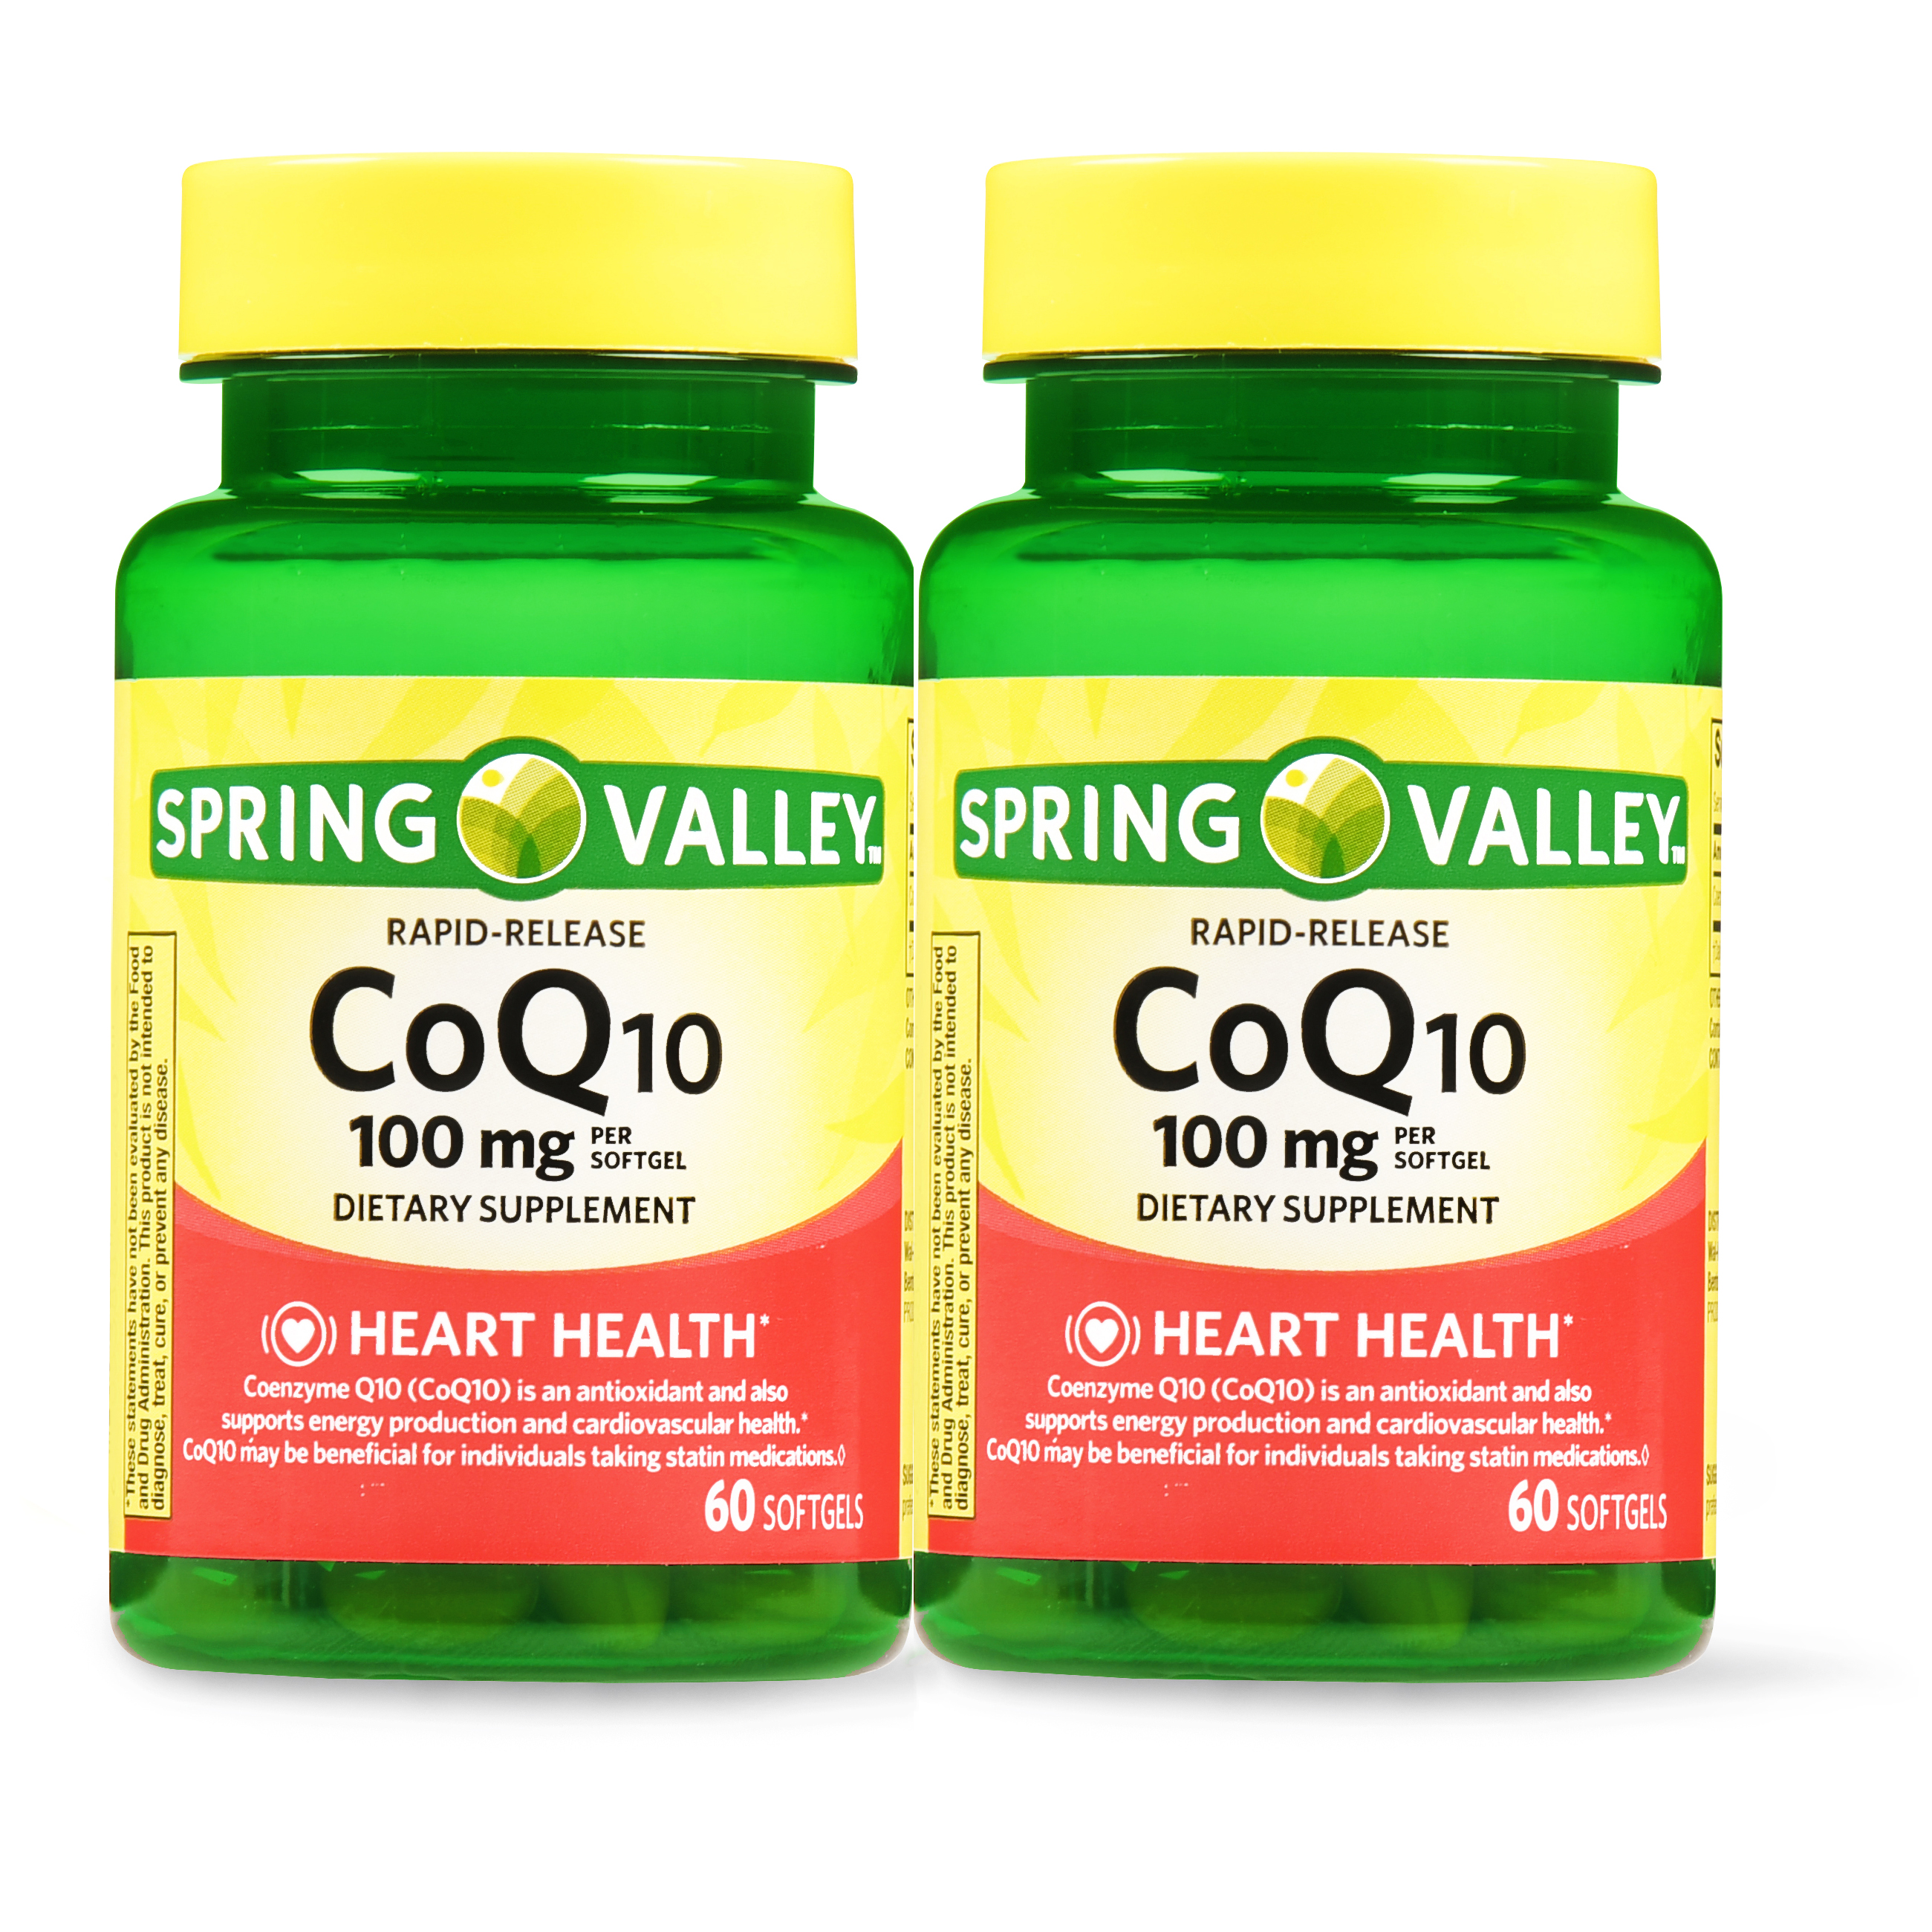 Spring Valley CoQ10 Rapid Release Softgels, 100 mg, 60 Ct, 2 Pk